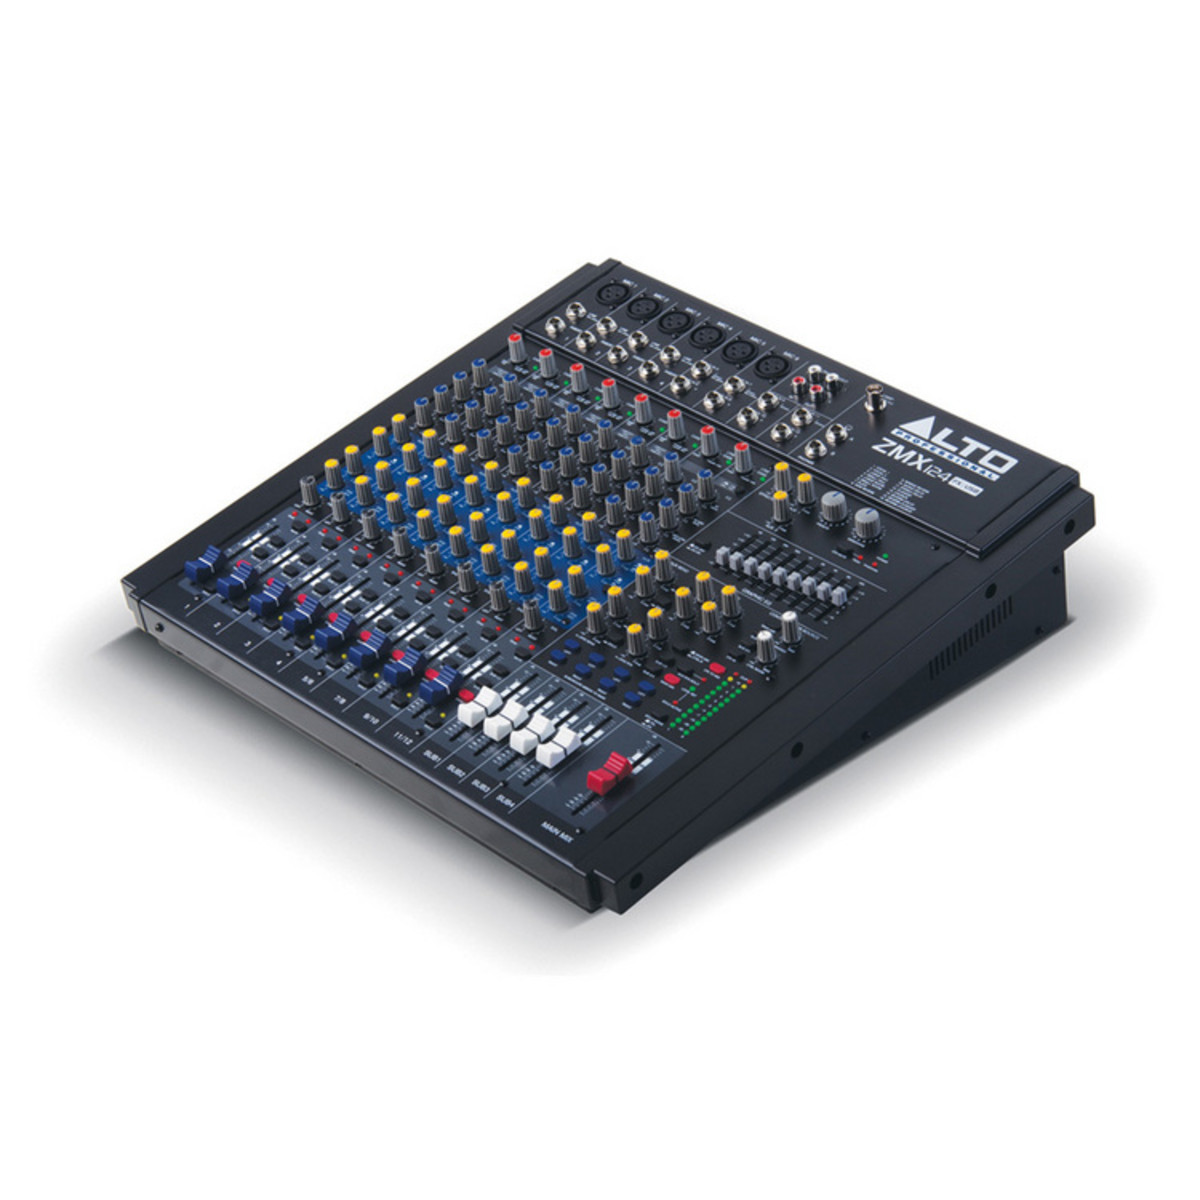 Puis zmx124fx 12 canaux compact dsp usb table de mixage for Table de mixage zmx 52